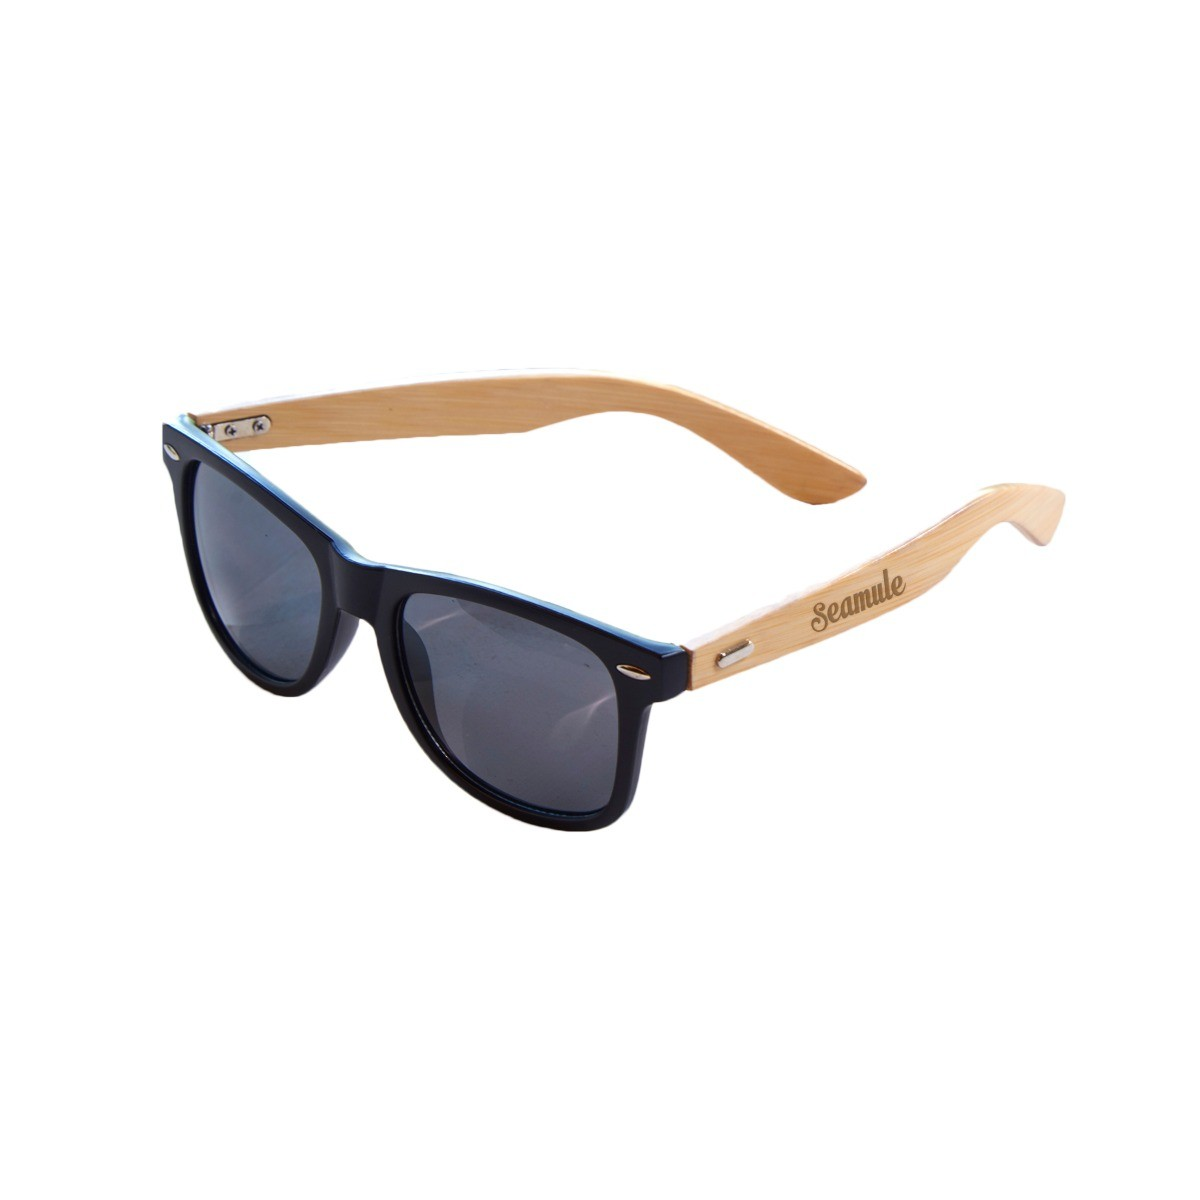 Black and Bamboo Sunglasses w/Pouch